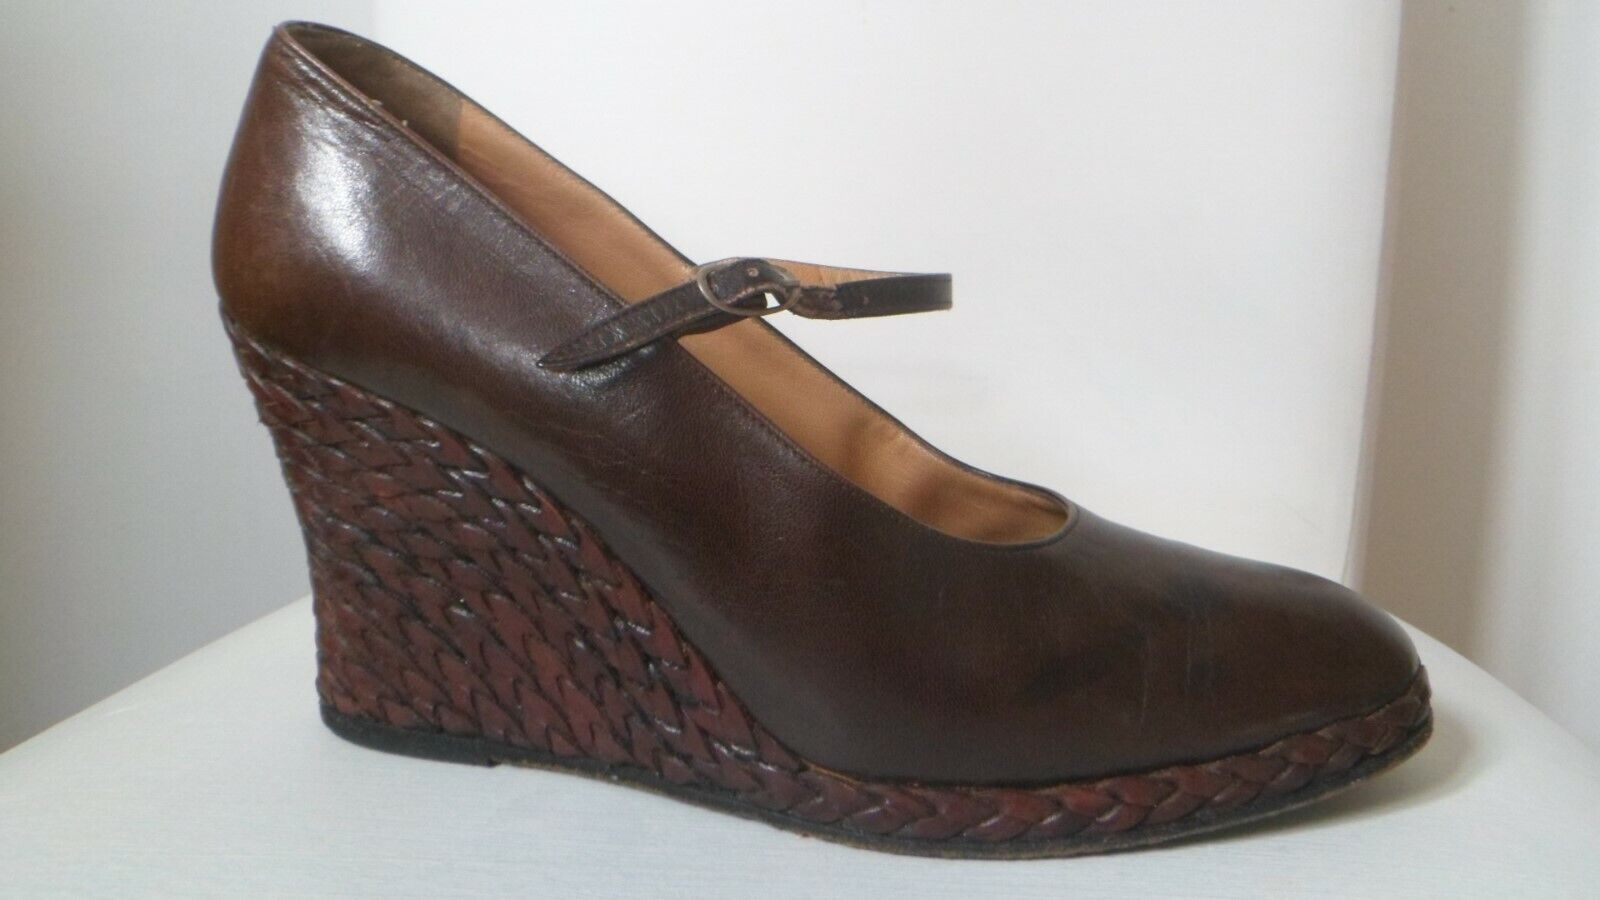 MARIO VALENTINO BROWN LEATHER WEDGE HEEL SHOES. SIZE UK 7 EU 40